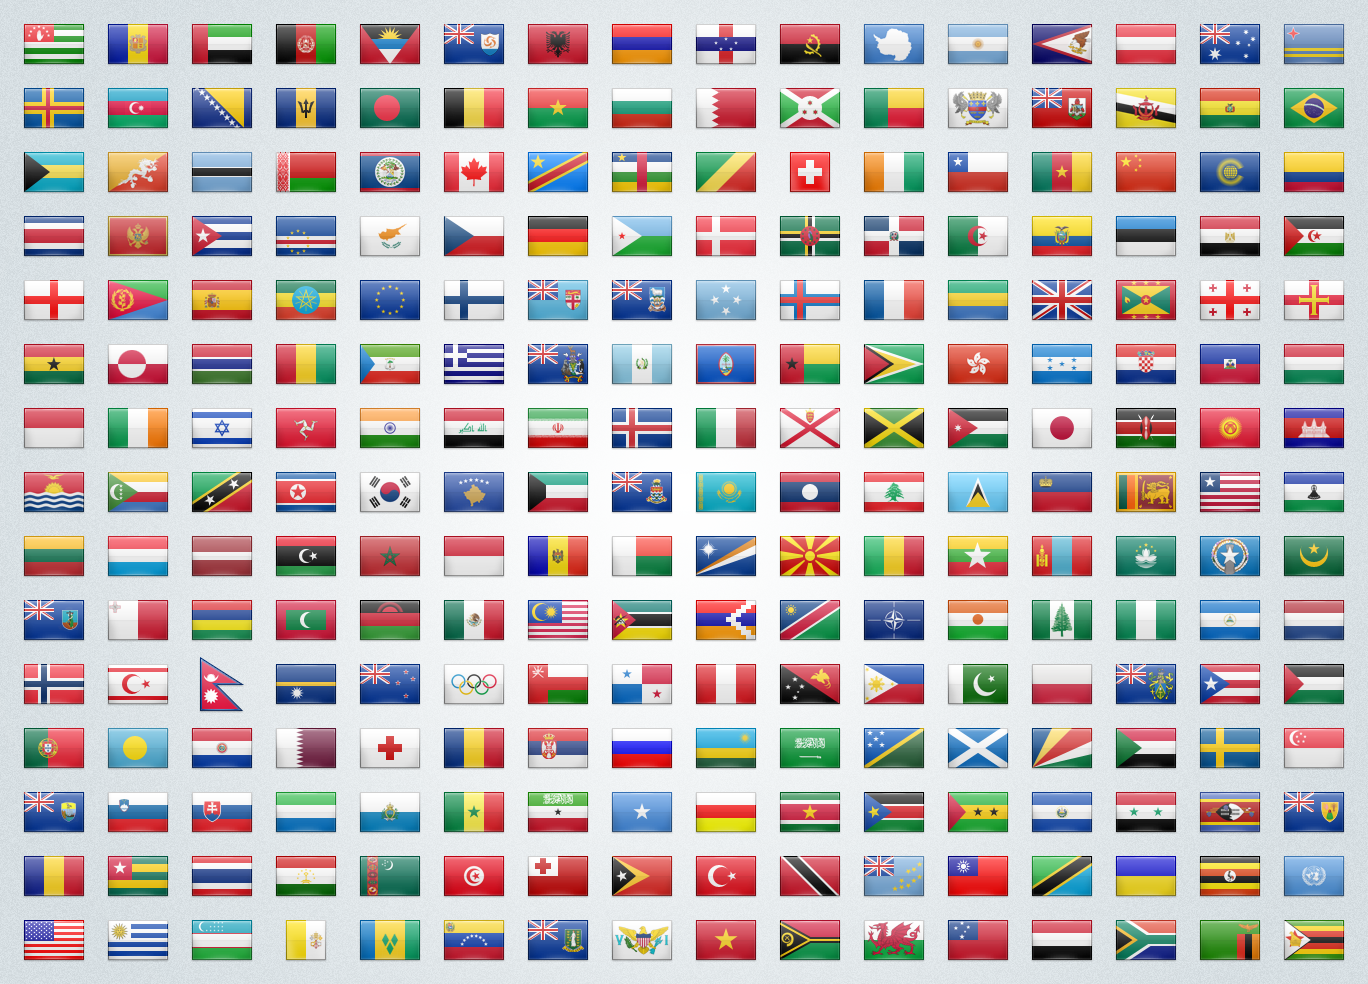 Gosquared 64px flags 11 months ago 4031 views